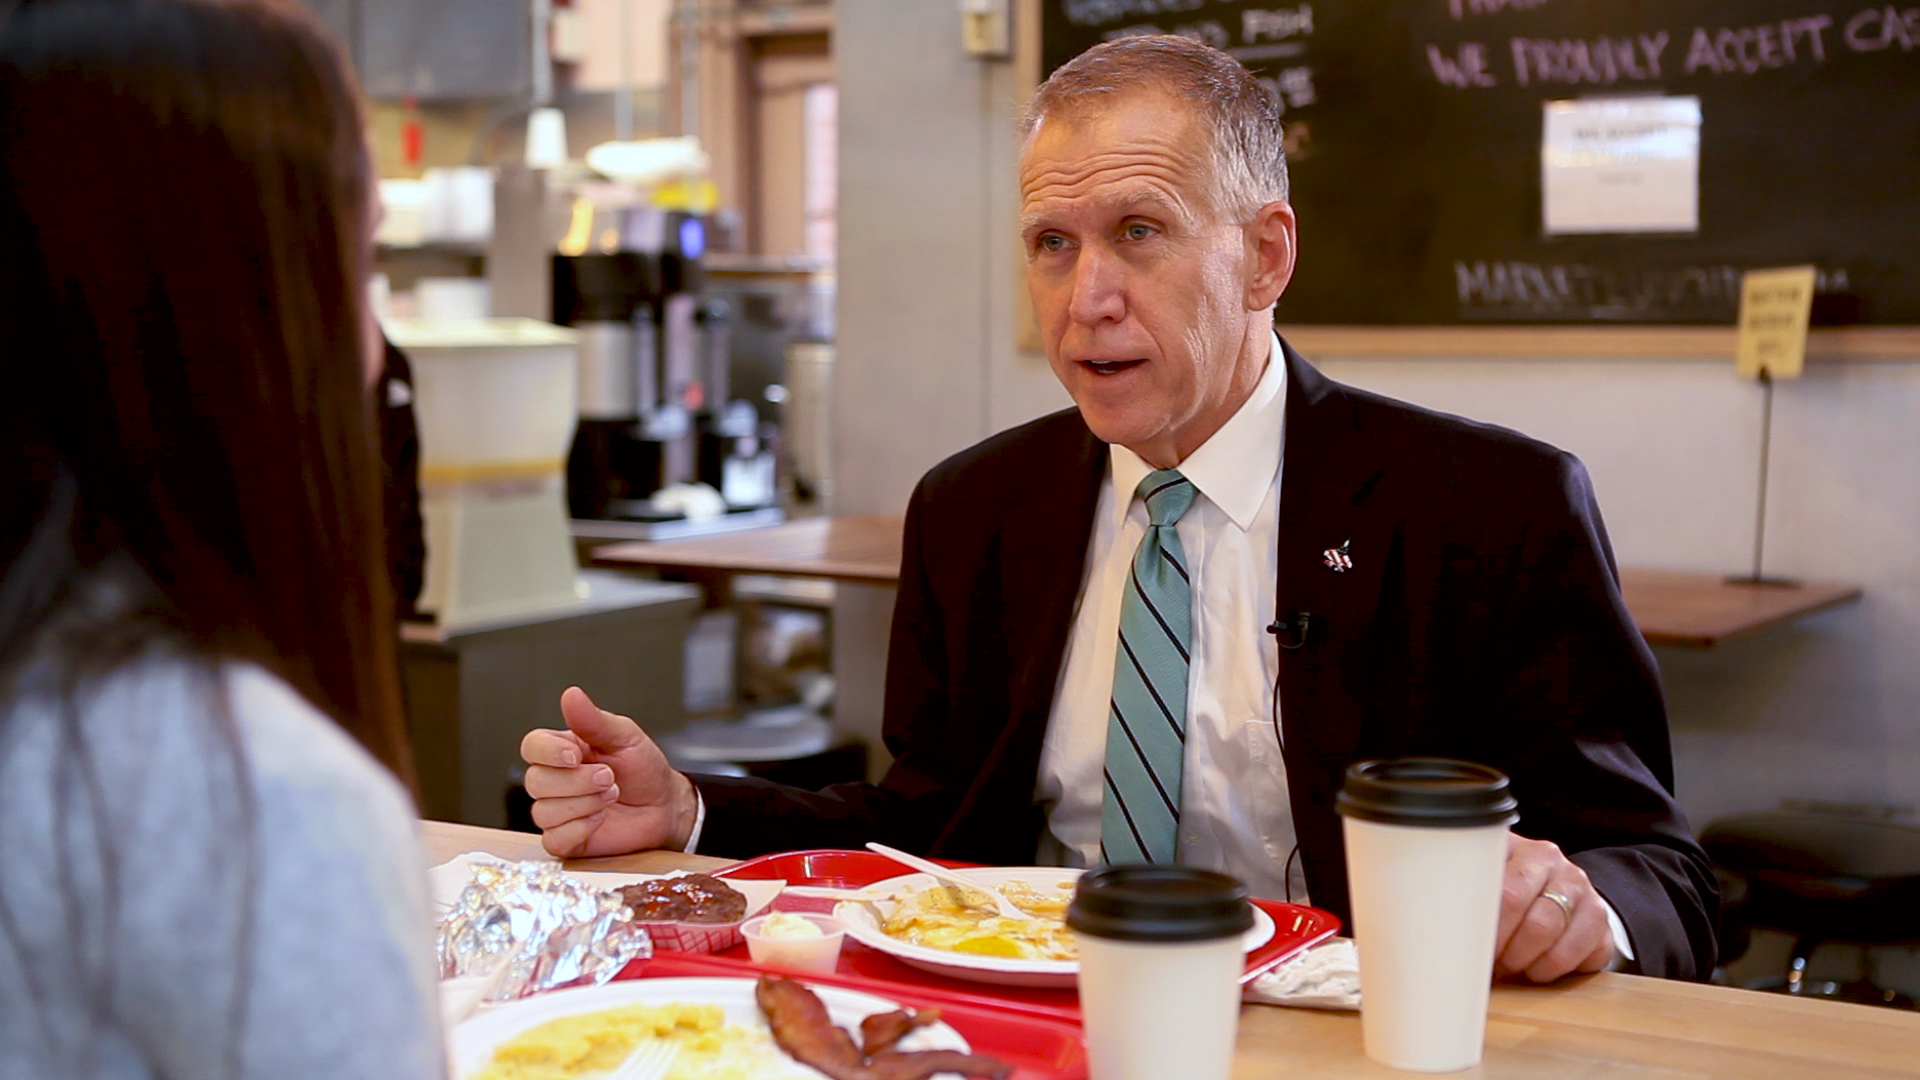 Tillis had sunny side up eggs for breakfast growing up with his six siblings. (Thomas McKinless/ CQ Roll Call)